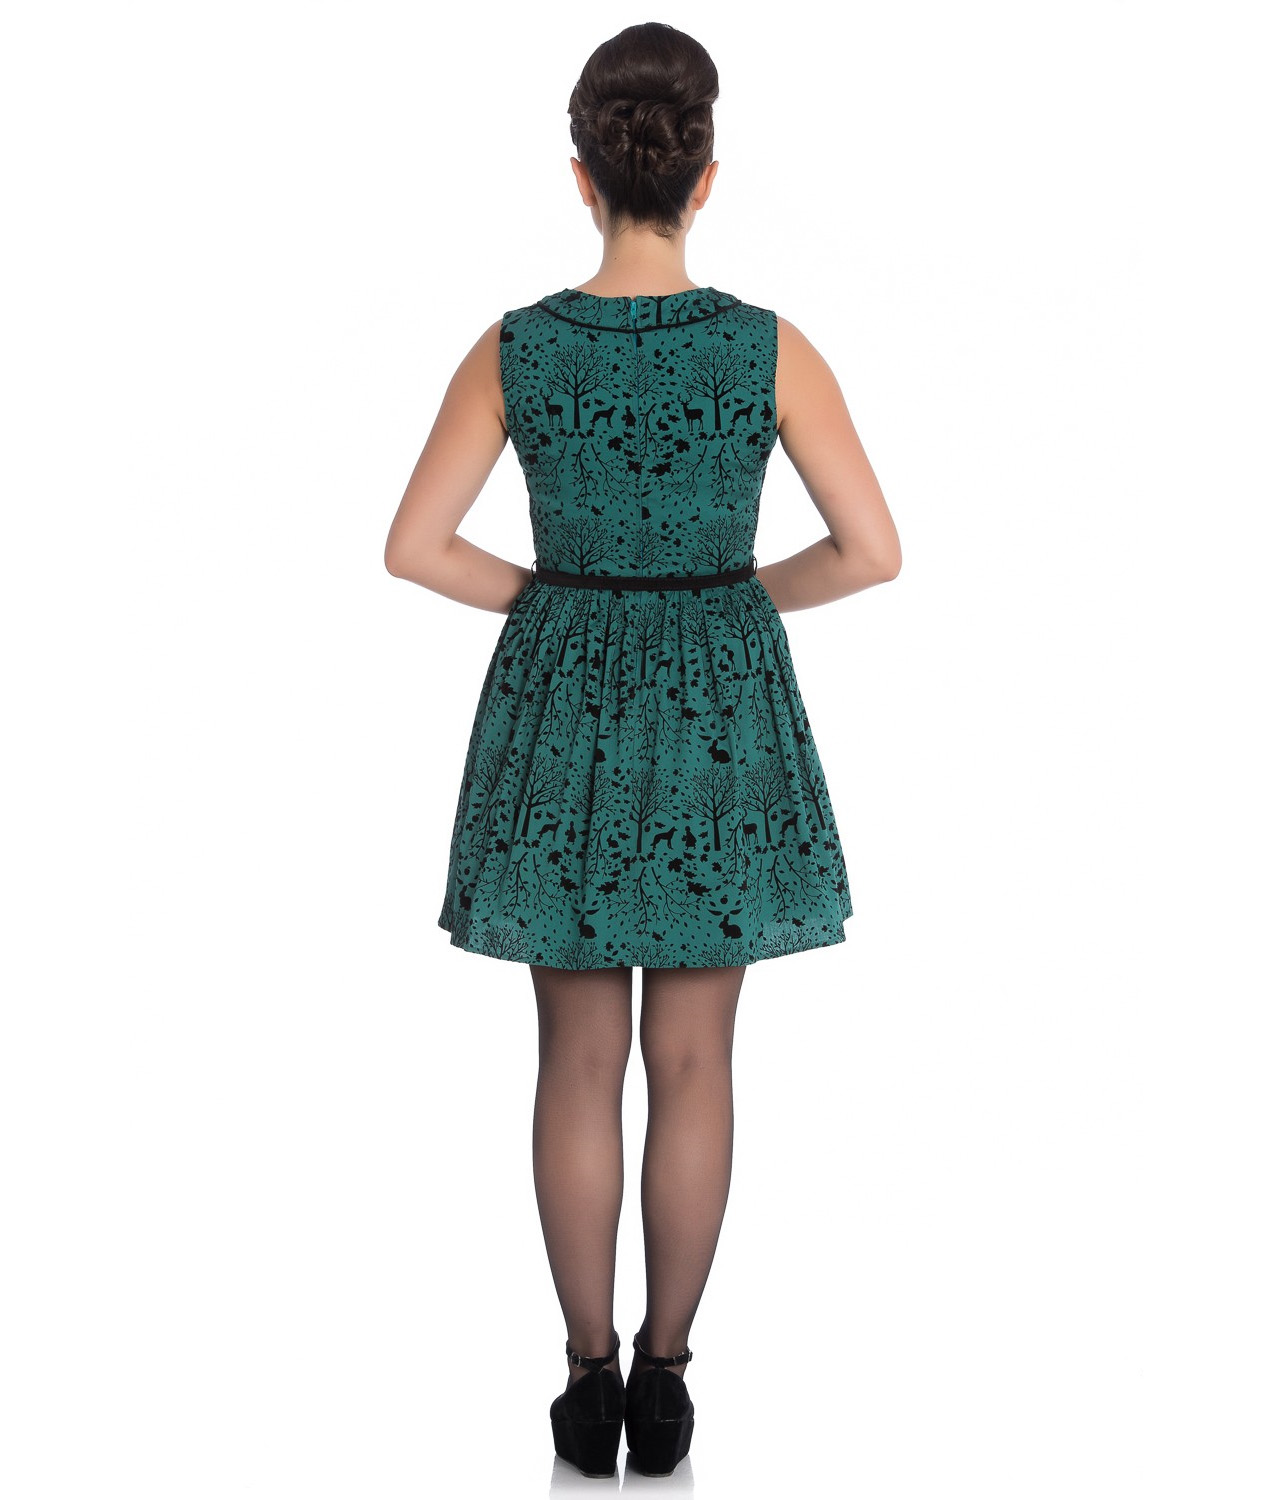 Hell-Bunny-50s-Mini-Skater-Dress-Woodland-Trees-SHERWOOD-Dark-Green-All-Sizes thumbnail 29